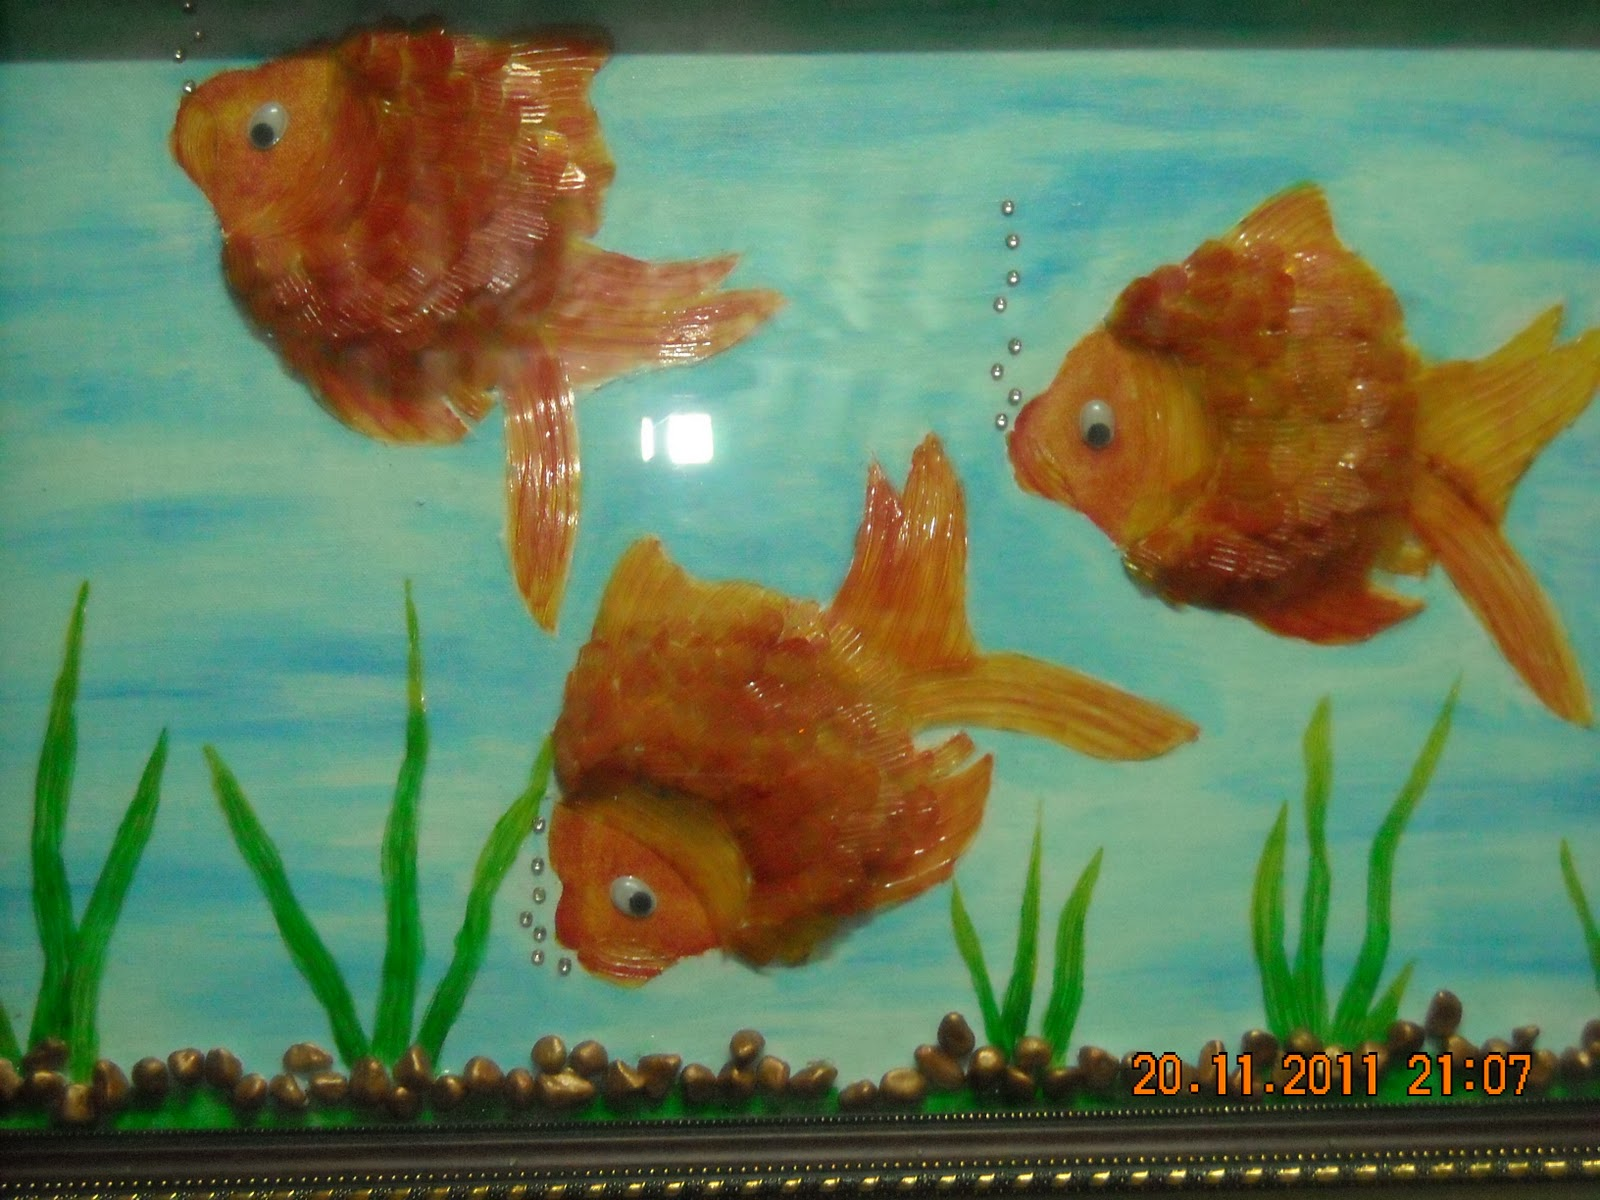 Orchids arts and craft gallery in palakkad fish art for Fish art and craft